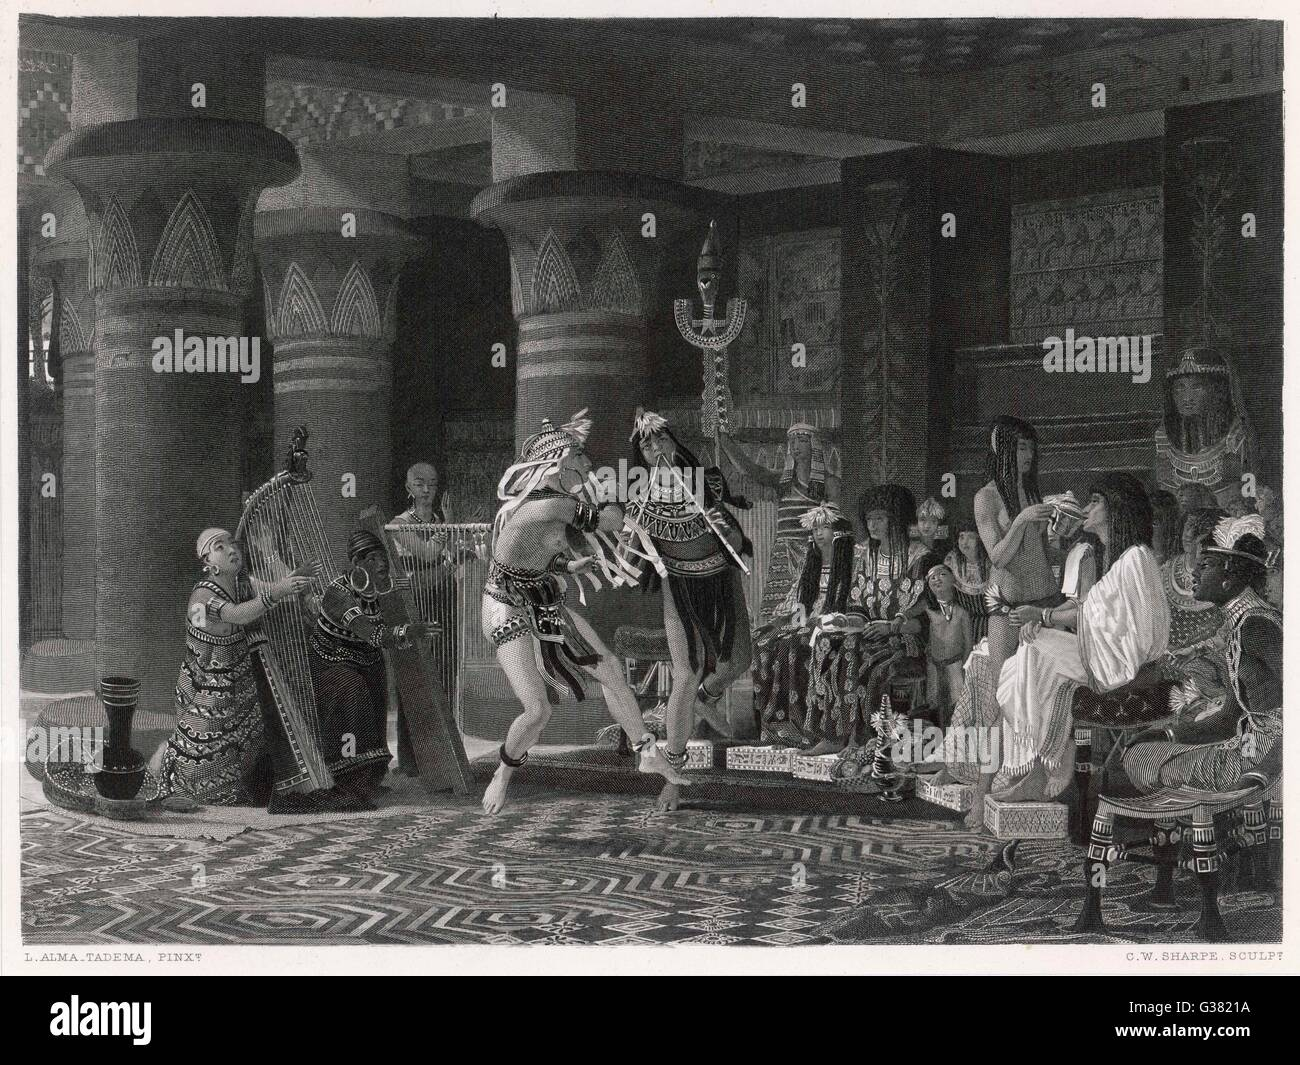 a musical entertainment in ancient egypt stock photo, royalty free, Powerpoint templates